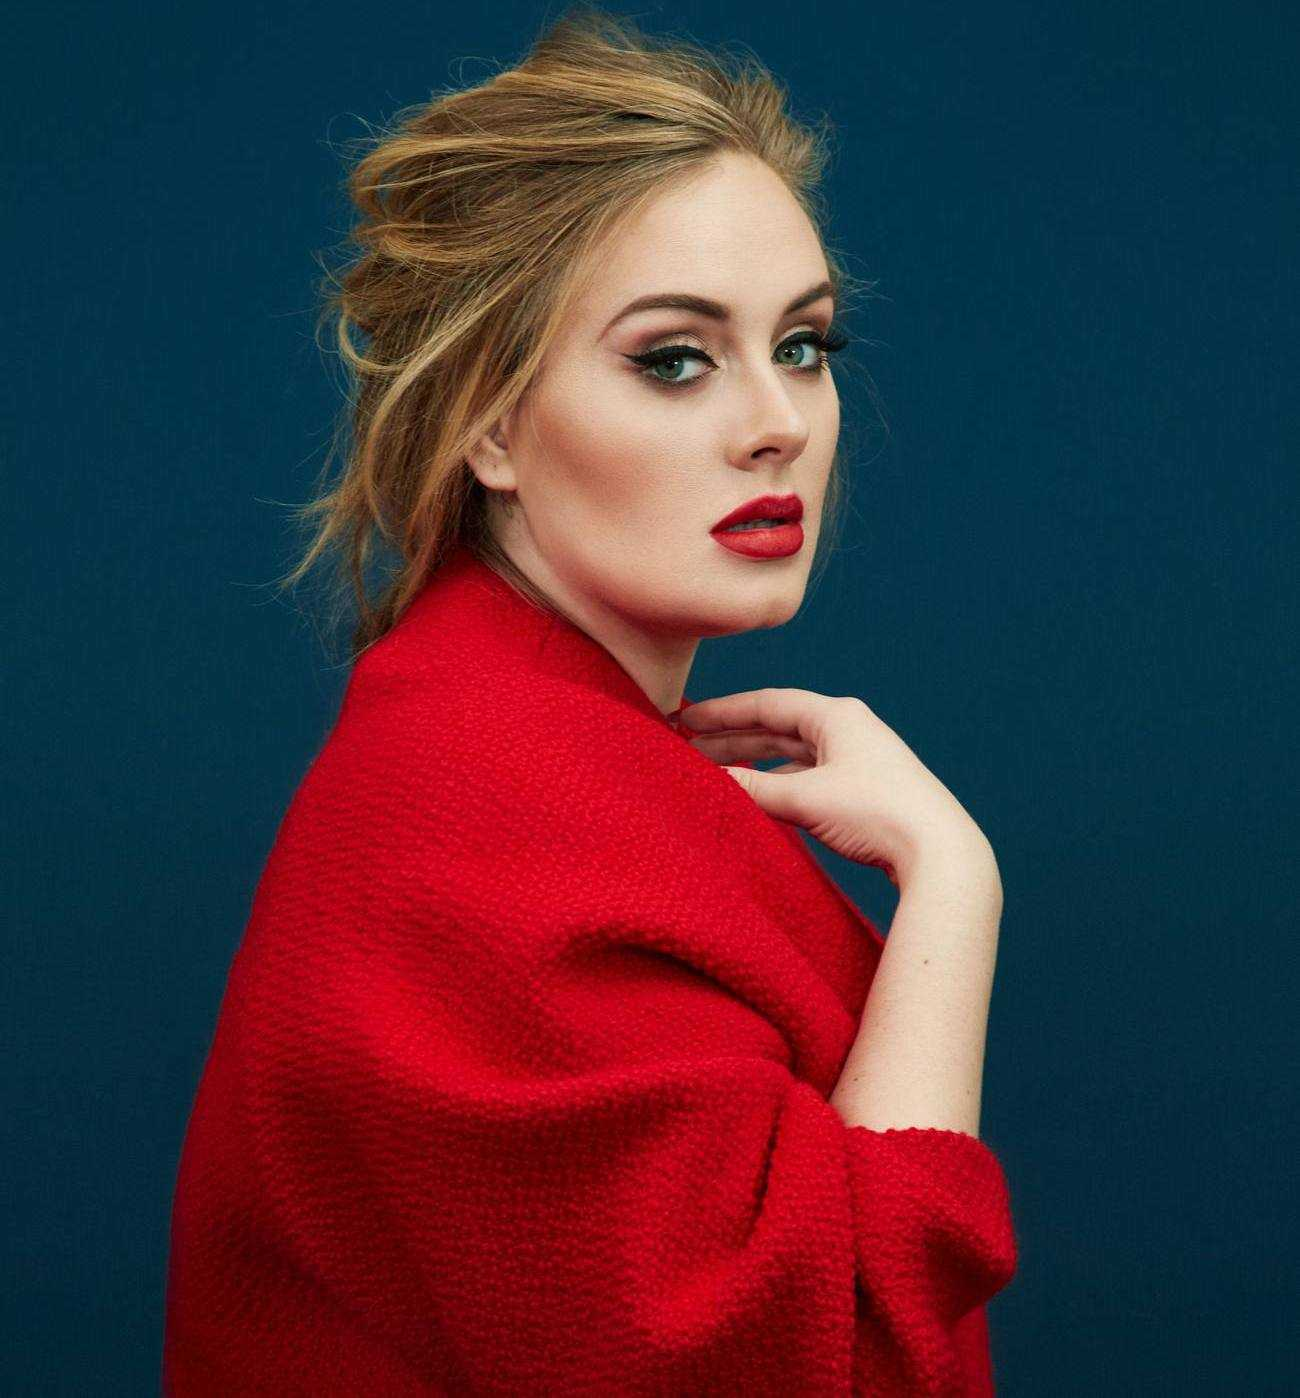 Adele Early Life